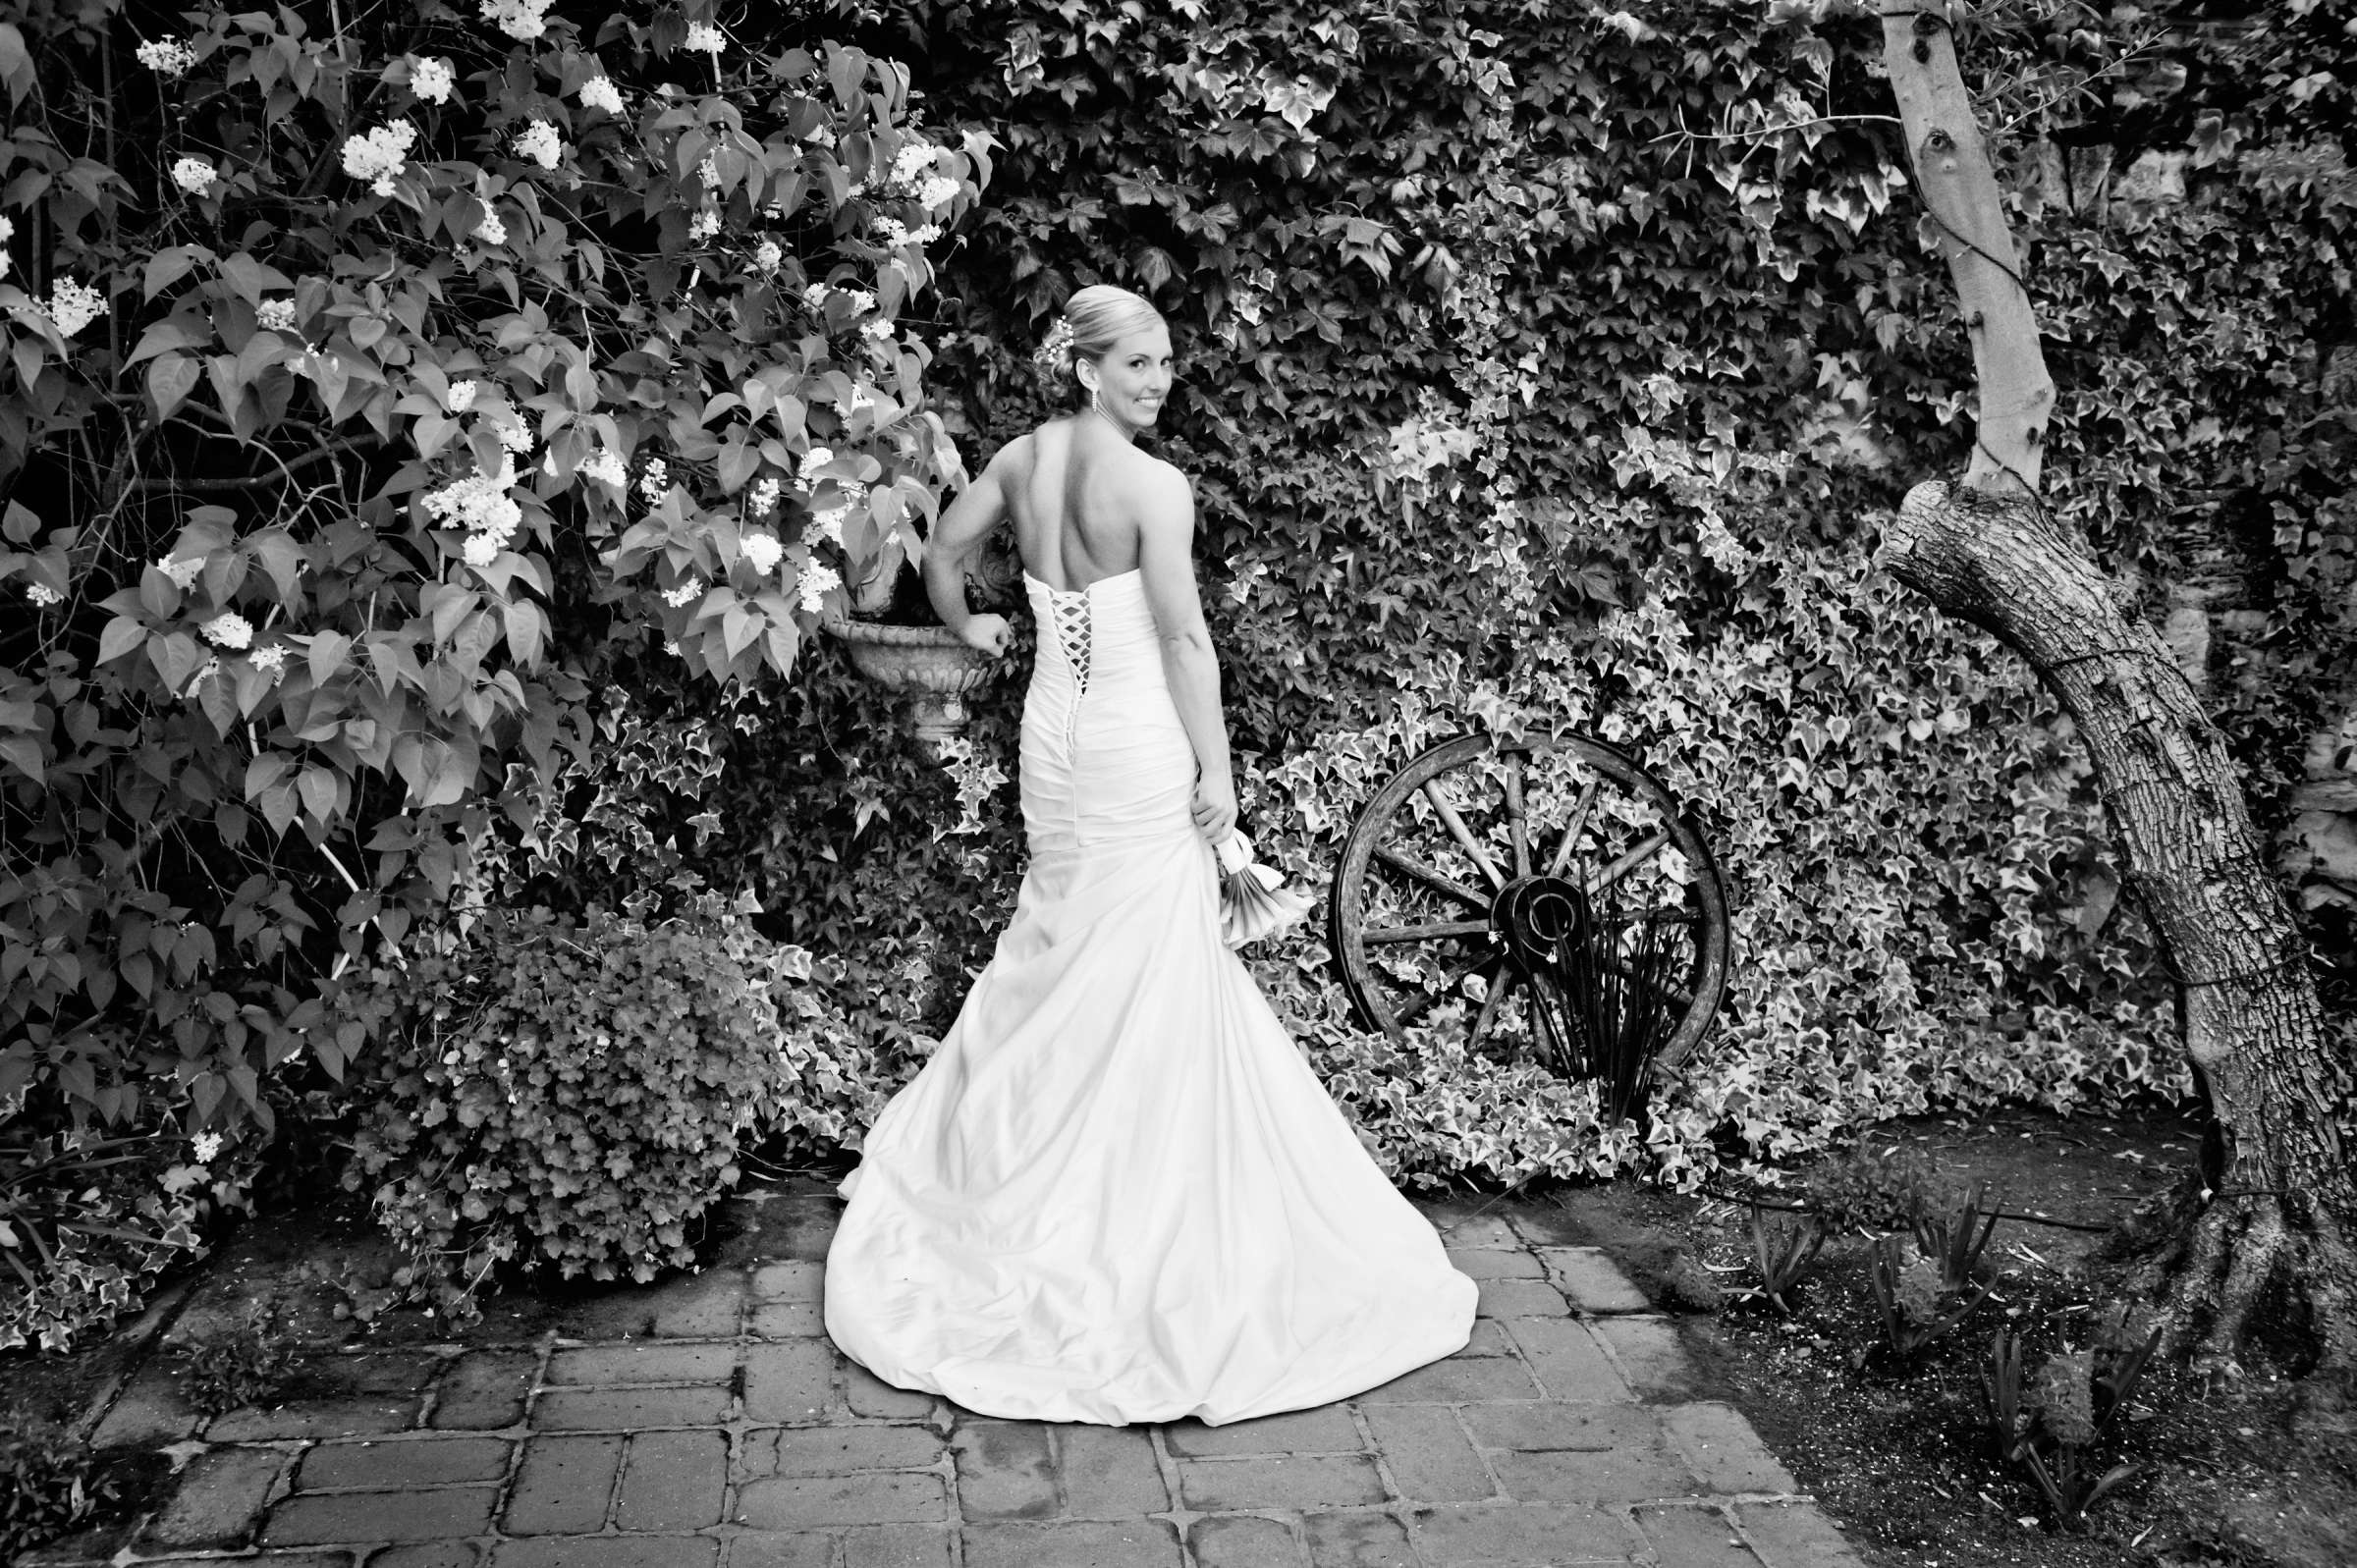 Holman Ranch Wedding, Kaley and Jason Wedding Photo #356227 by True Photography